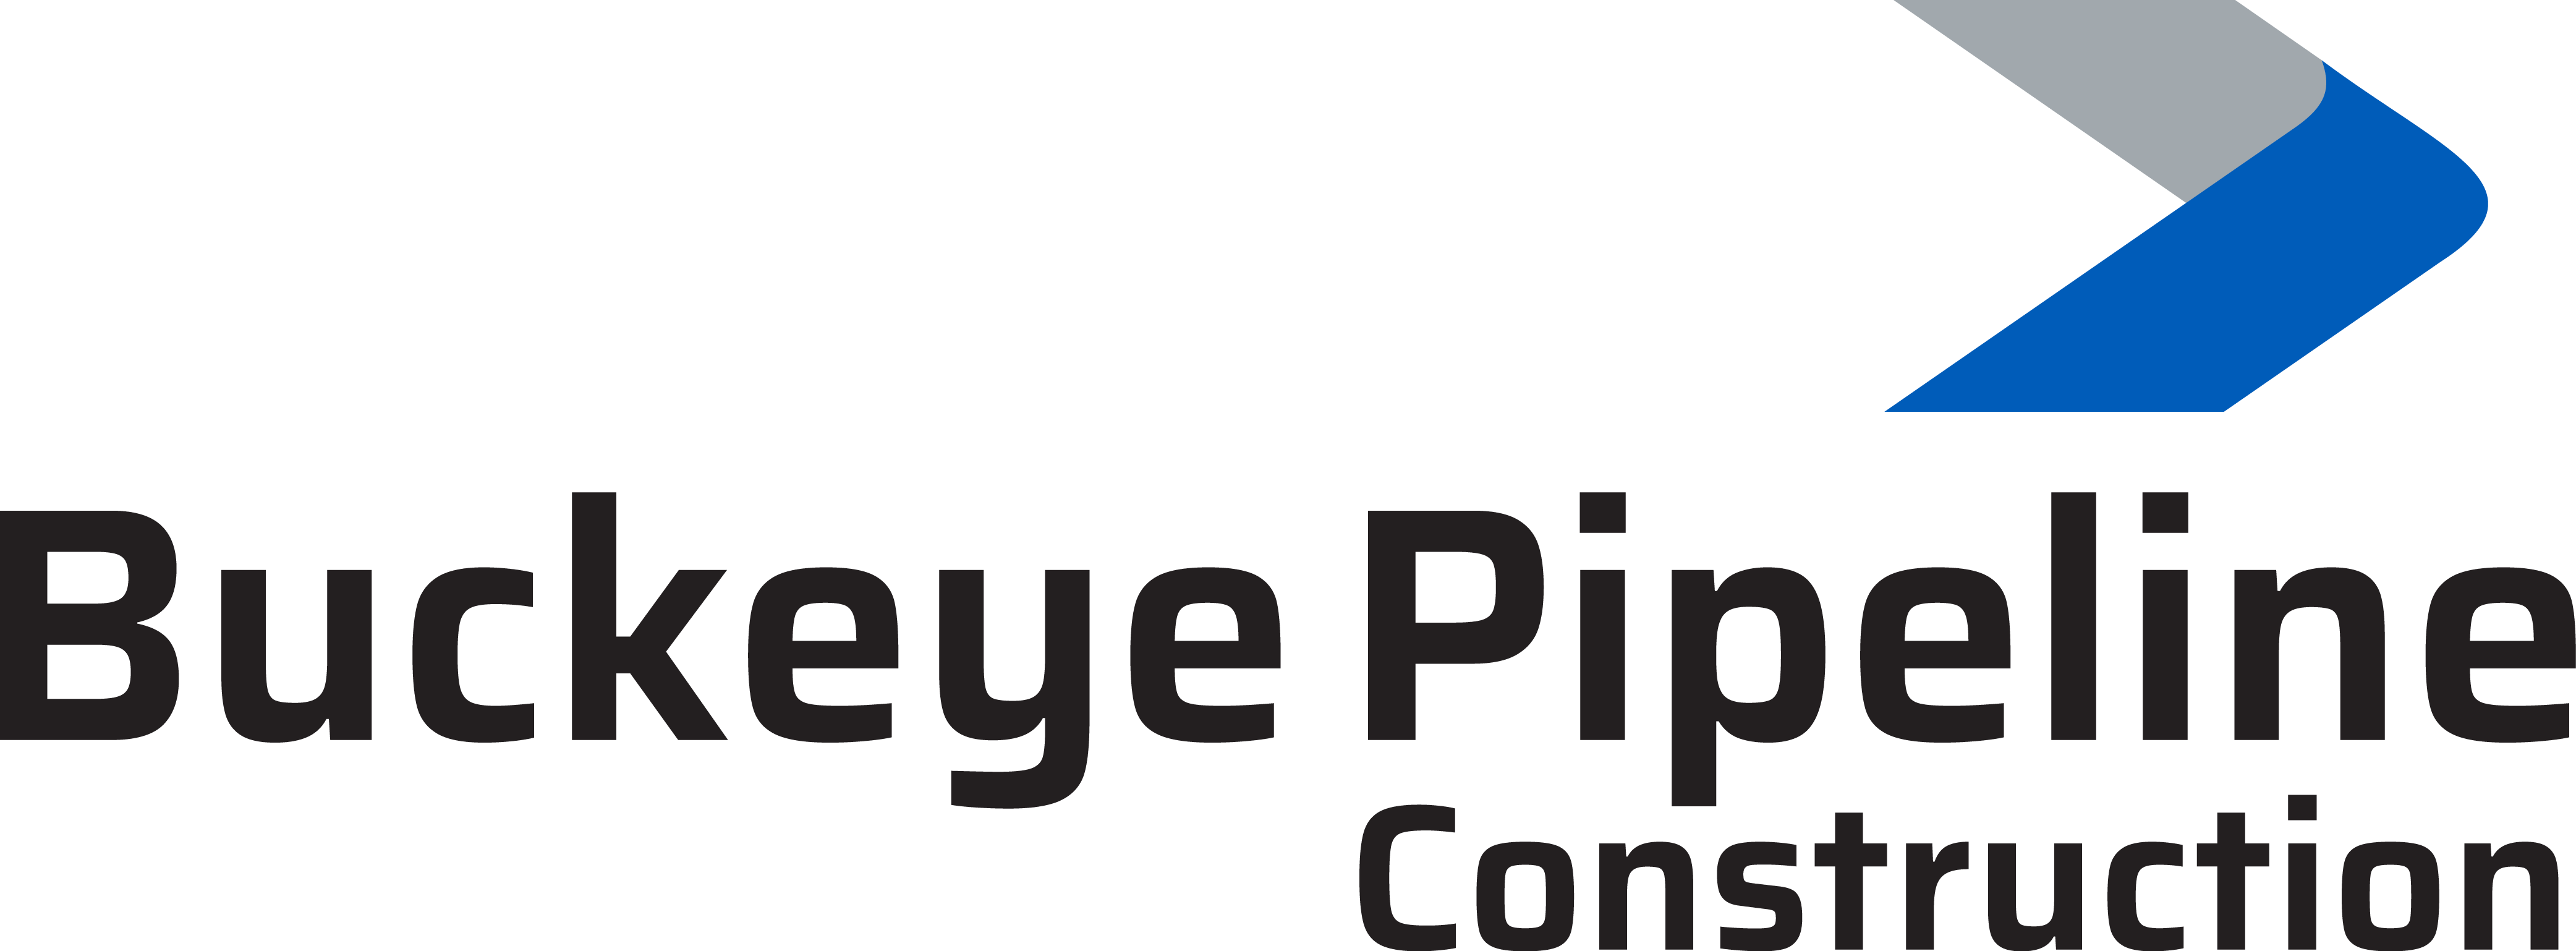 Buckeye Pipeline Construction